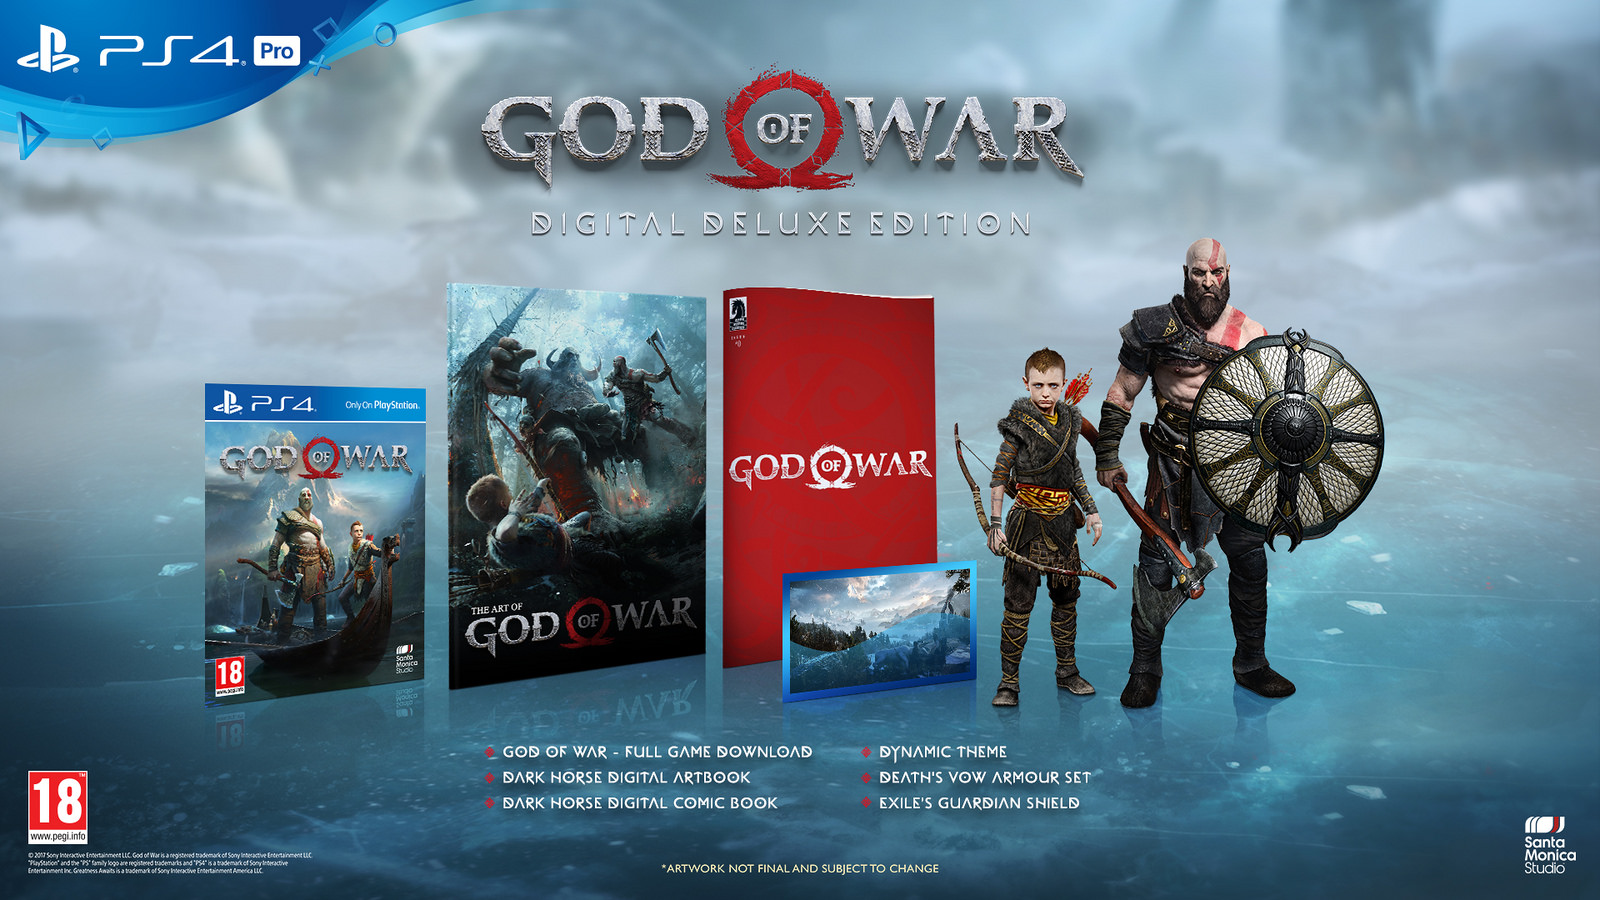 God of War Release Date and Story Trailer Revealed